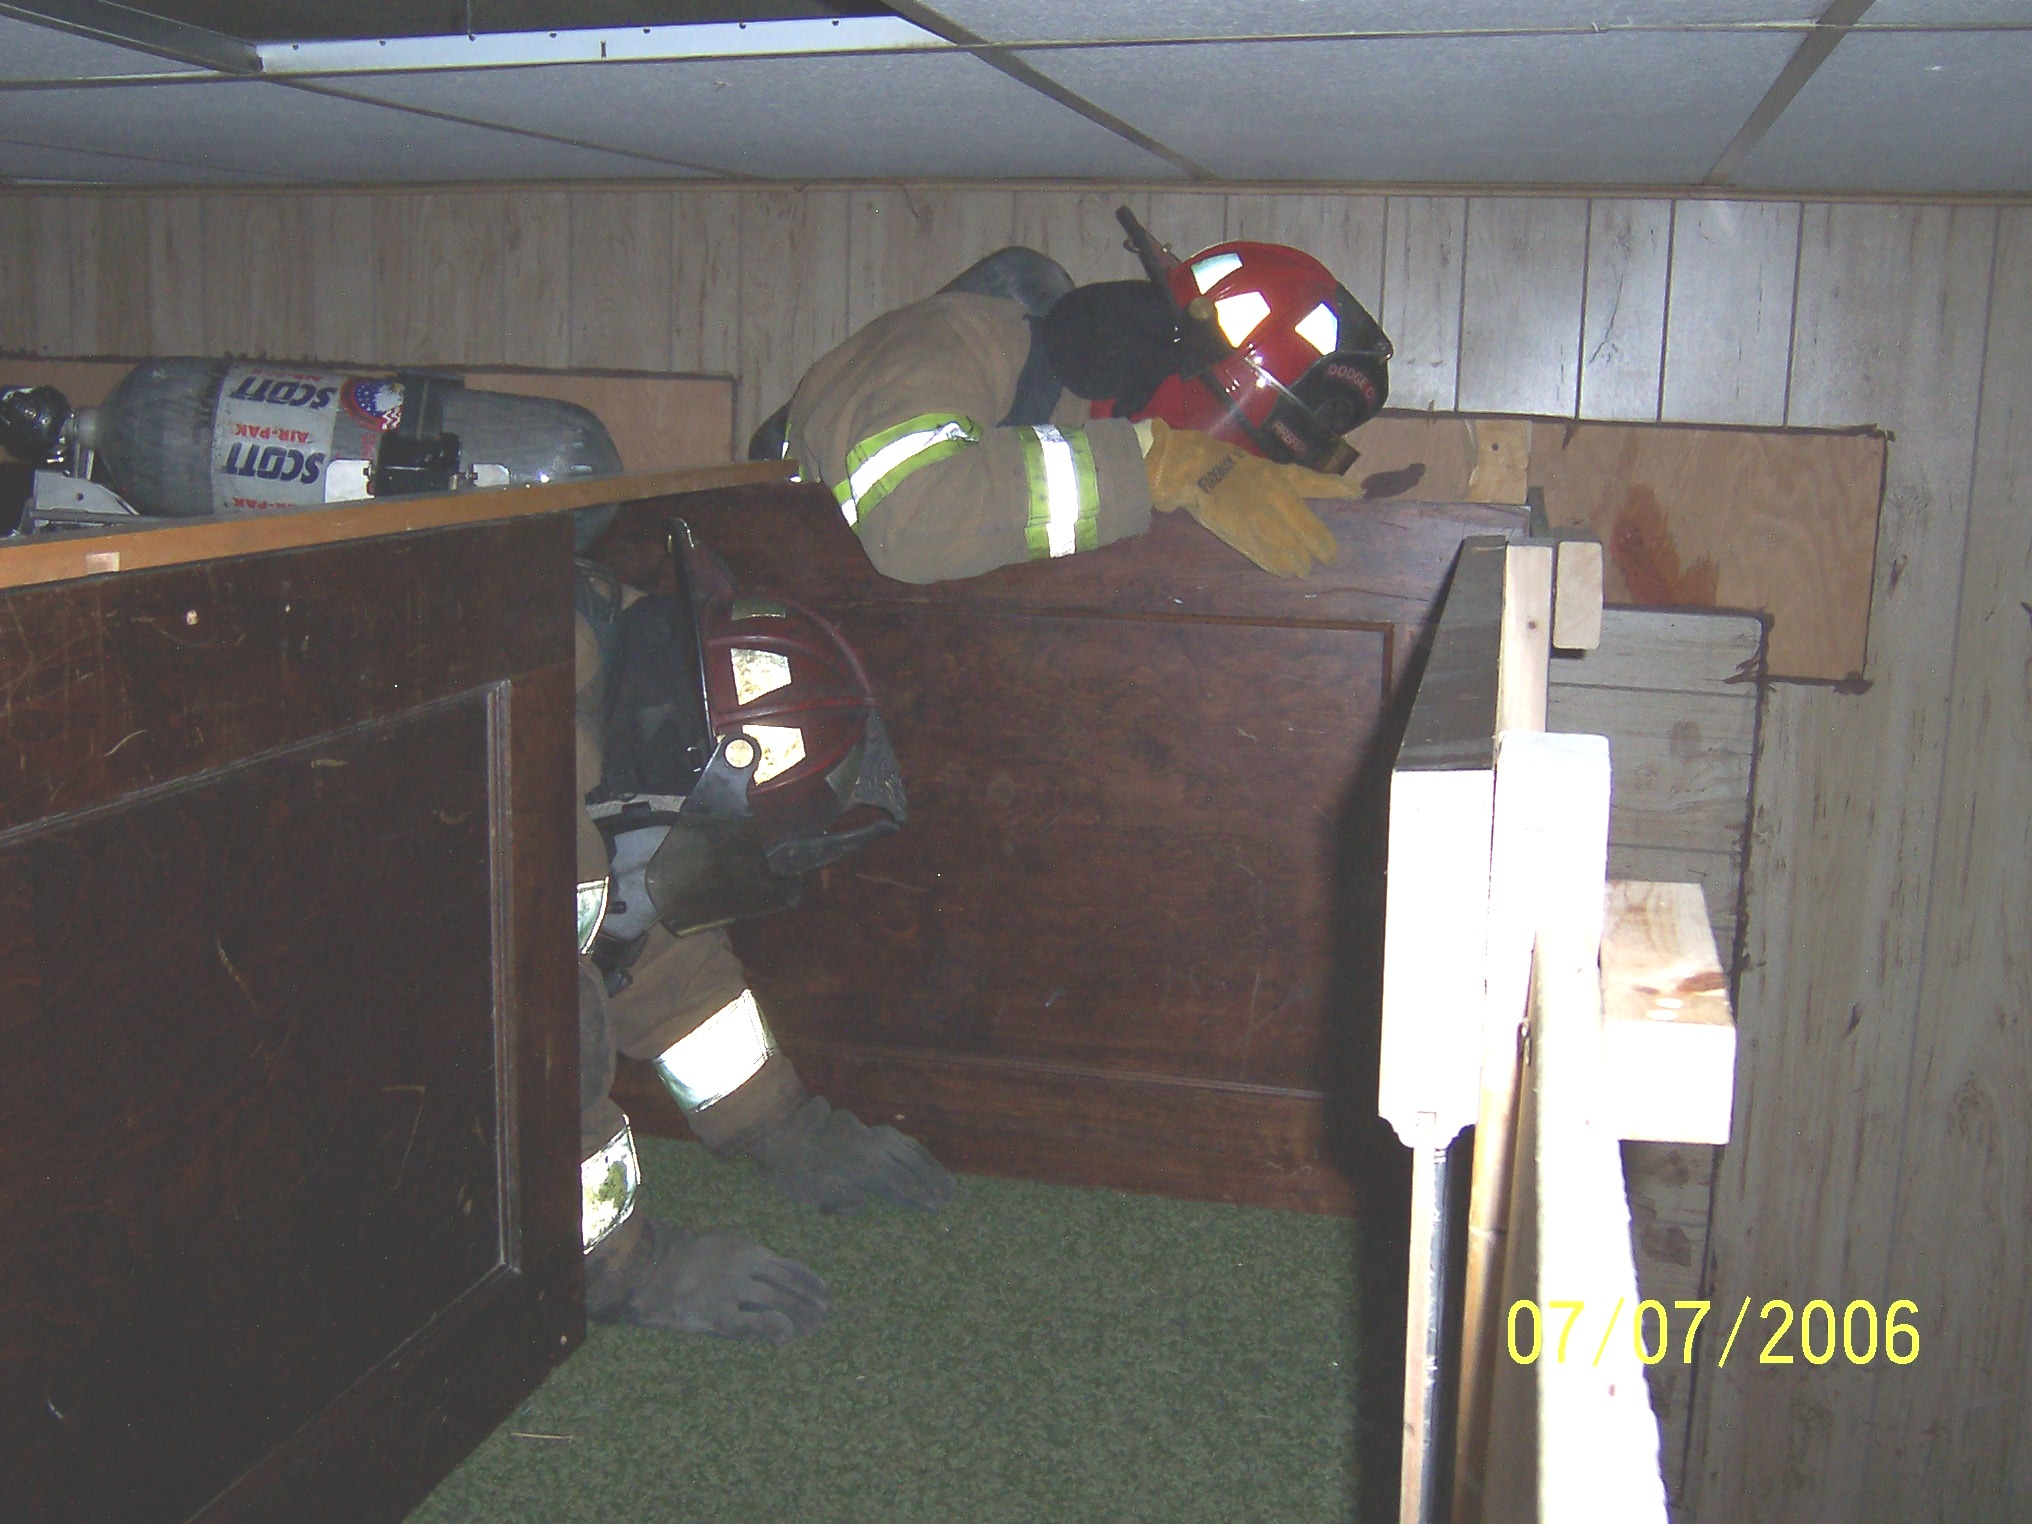 Firefighters training in the departments maze